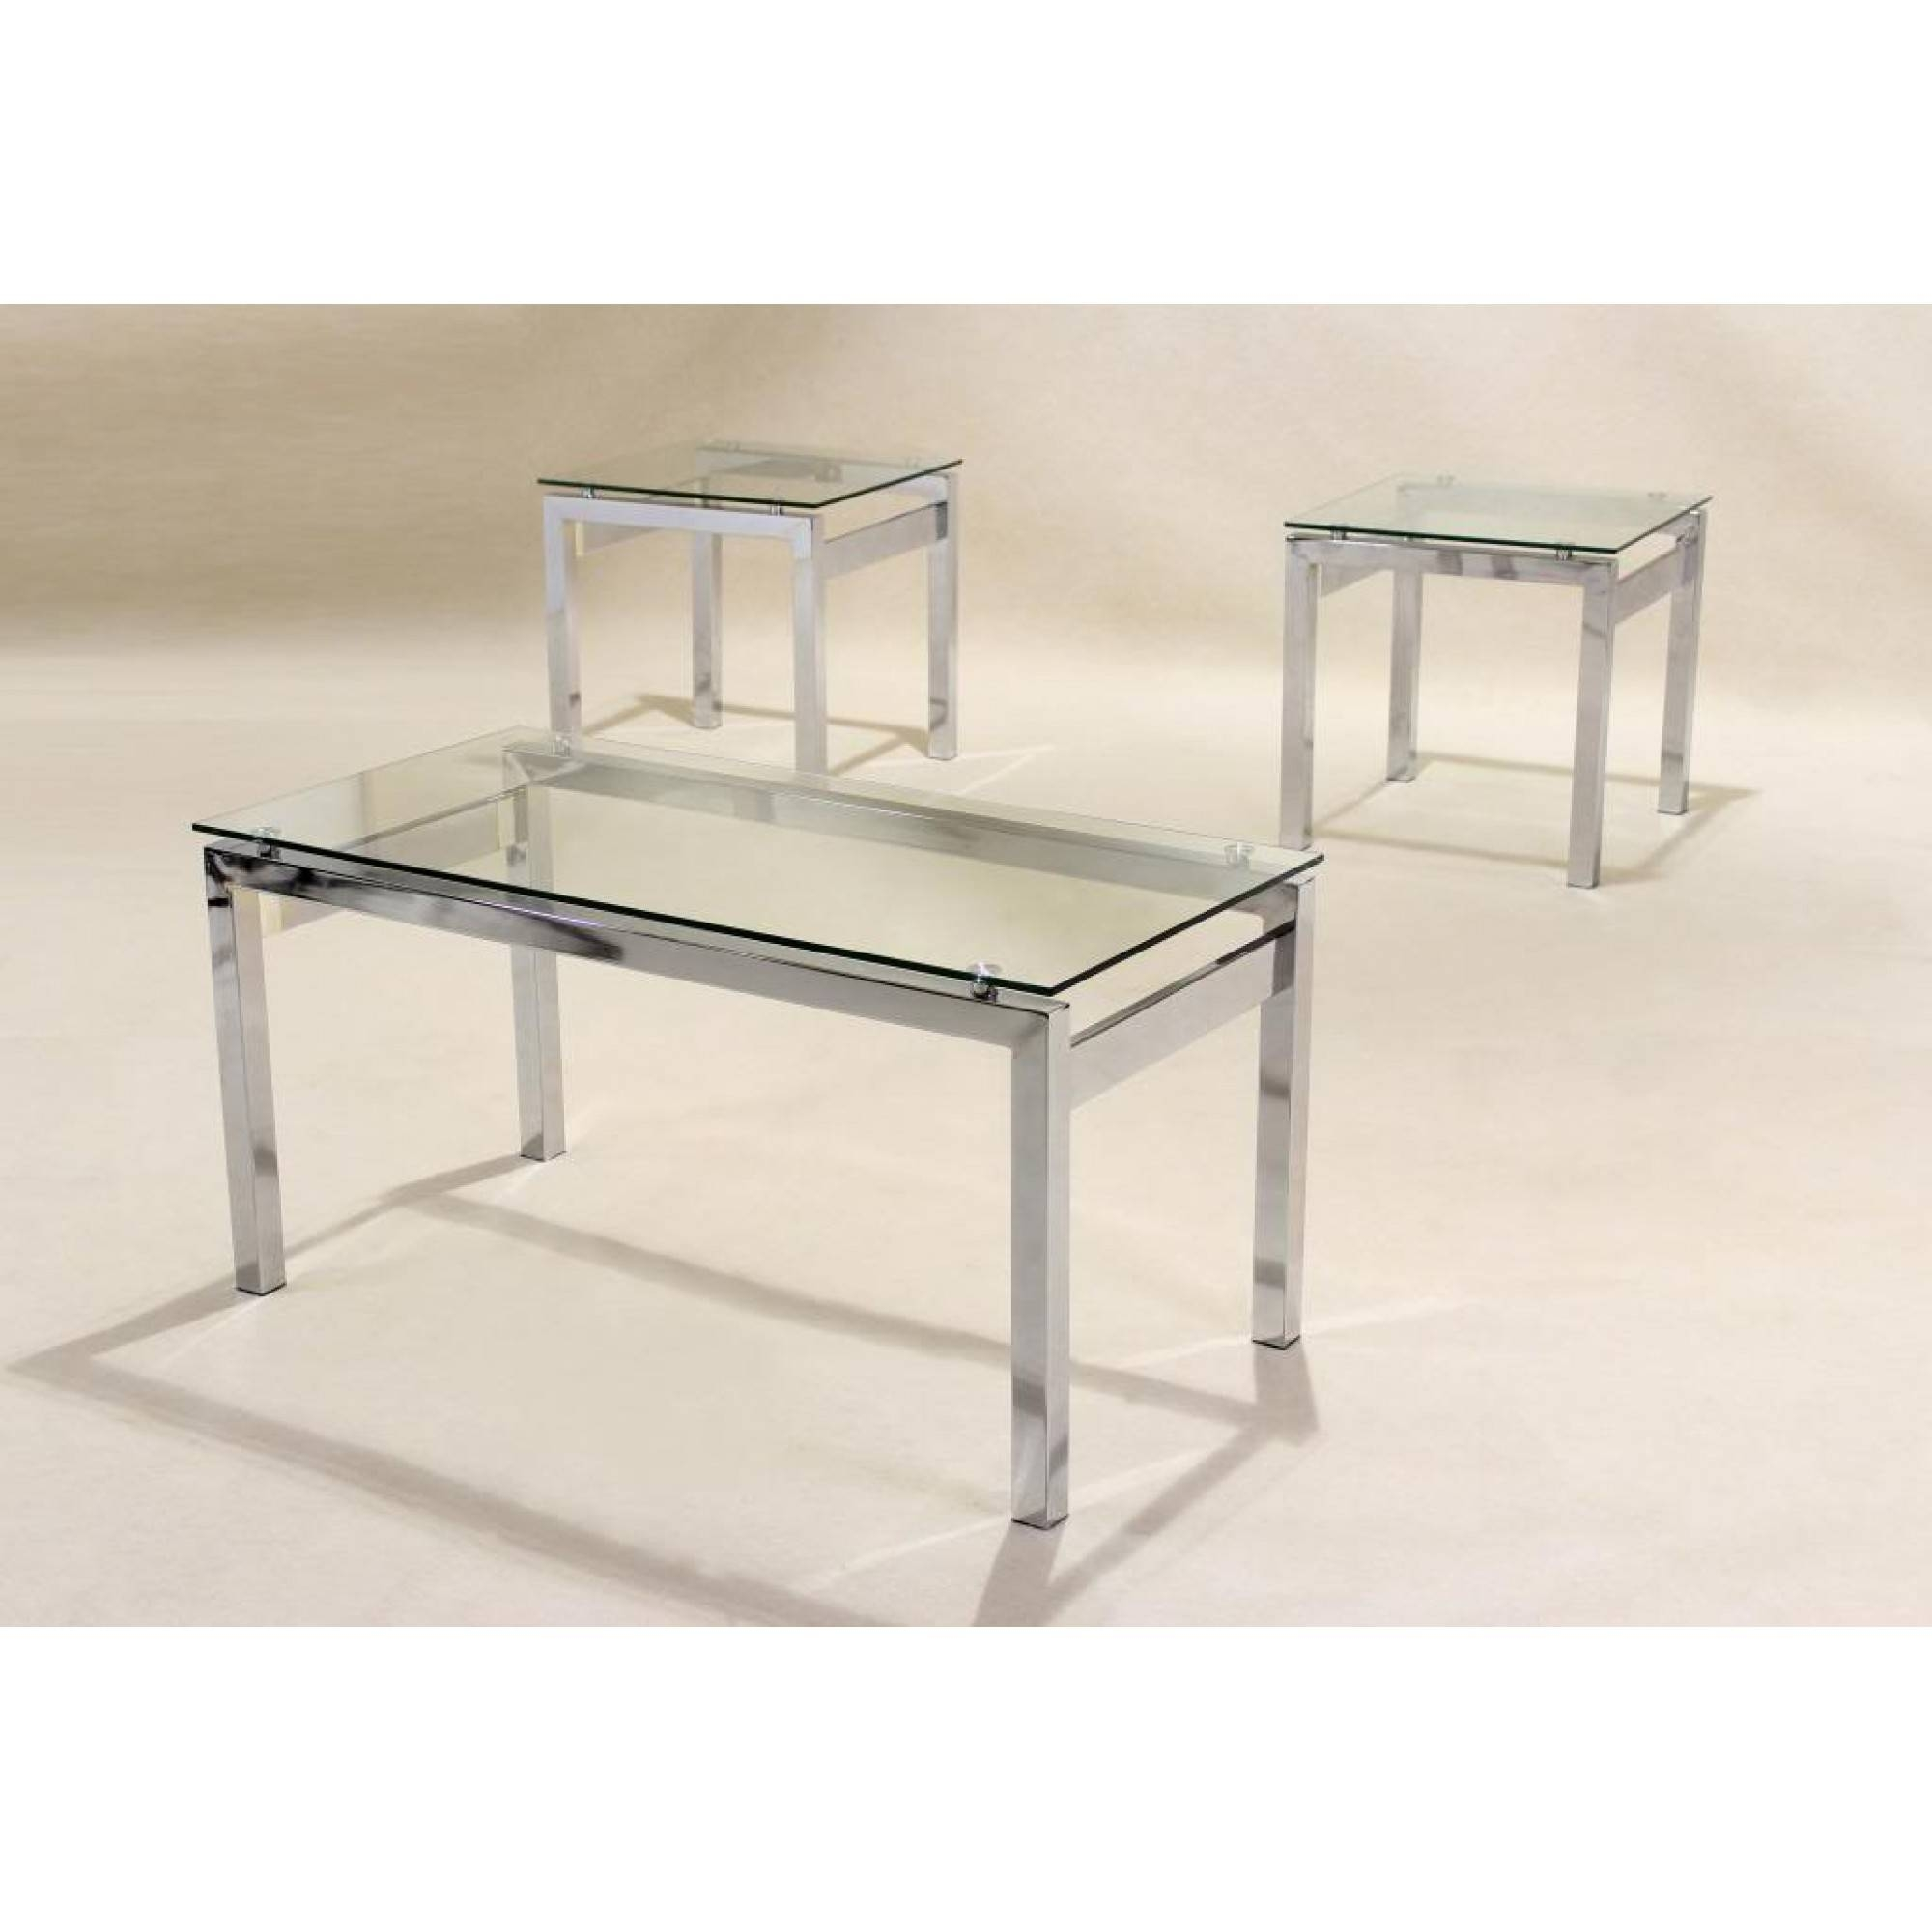 Glass And Chrome Coffee And End Tables | Coffee Tables Decoration pertaining to Chrome and Glass Coffee Tables (Image 14 of 30)